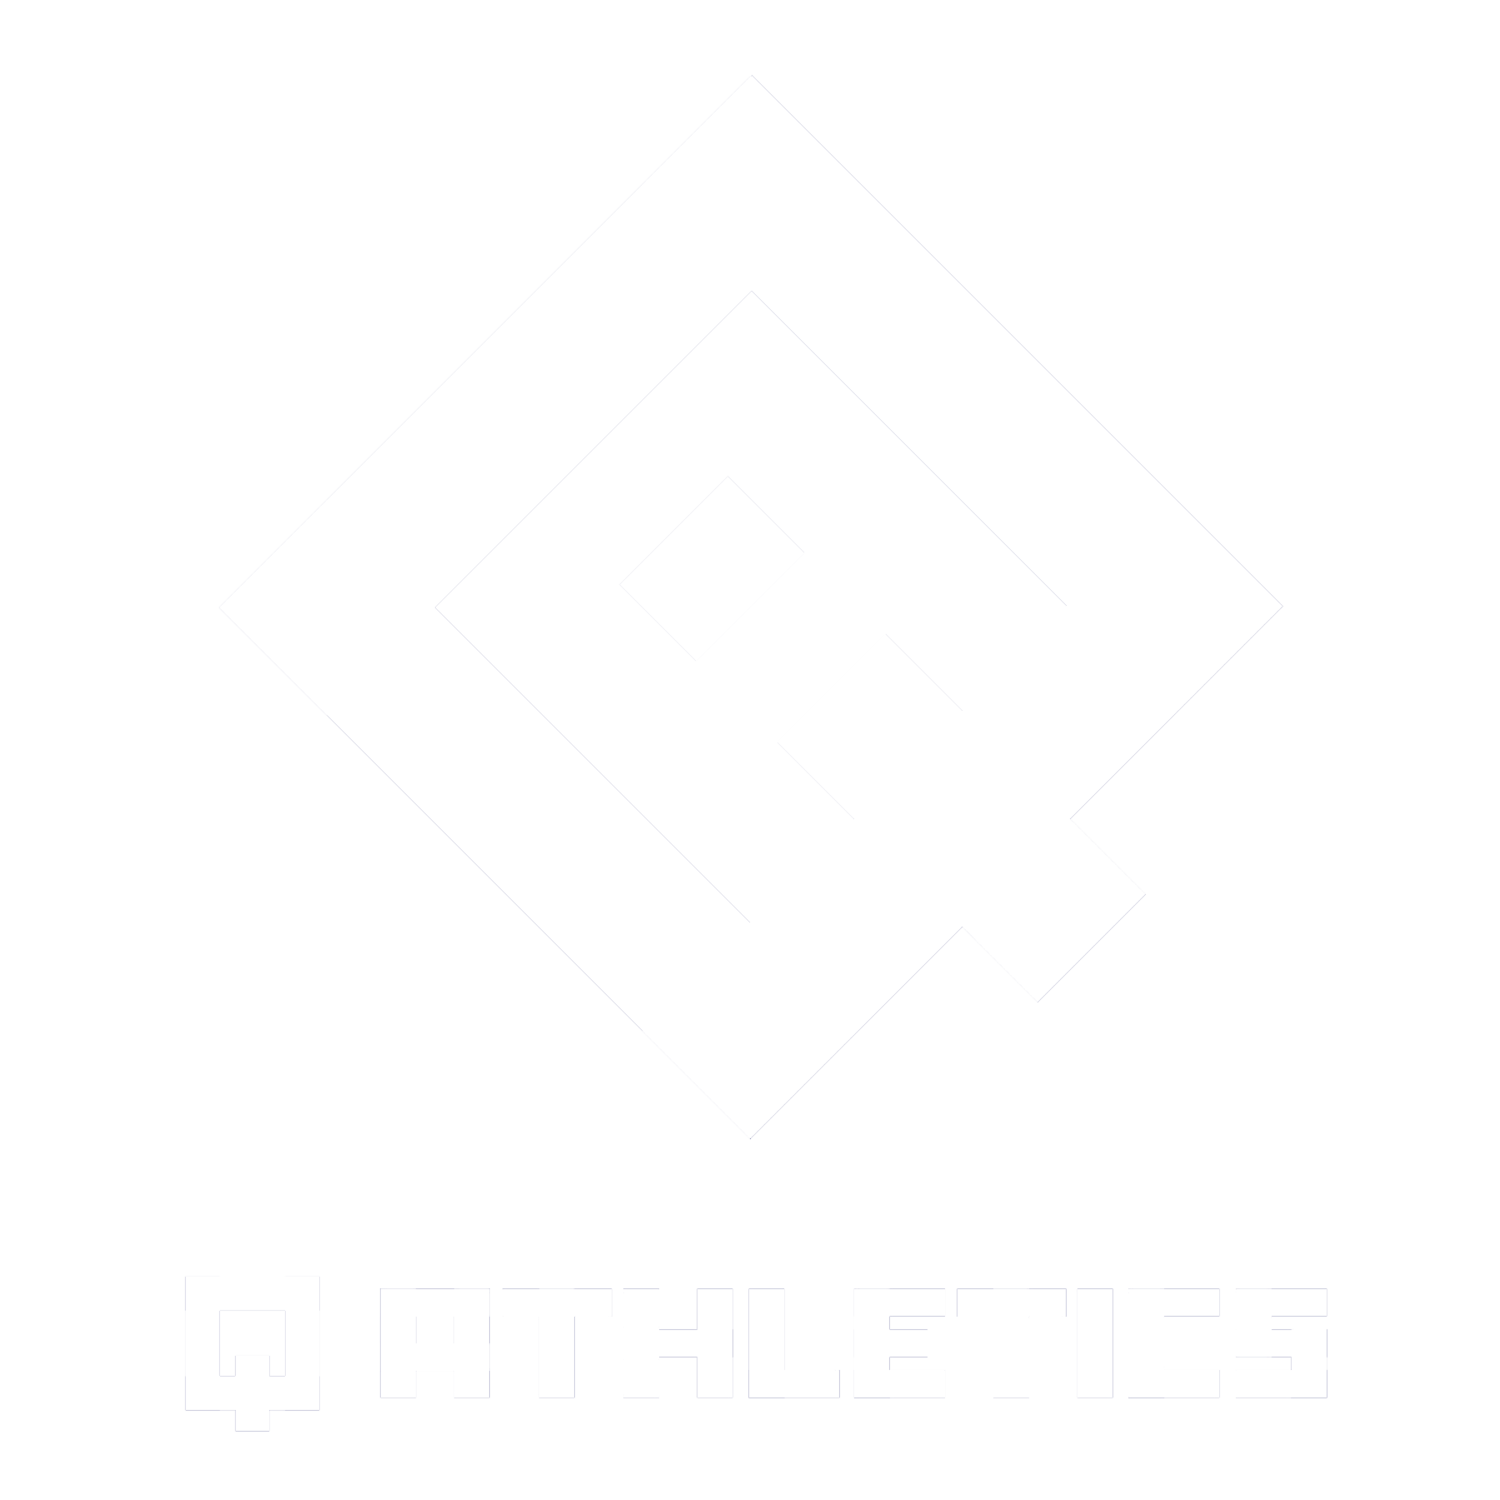 Q ATHLETICS